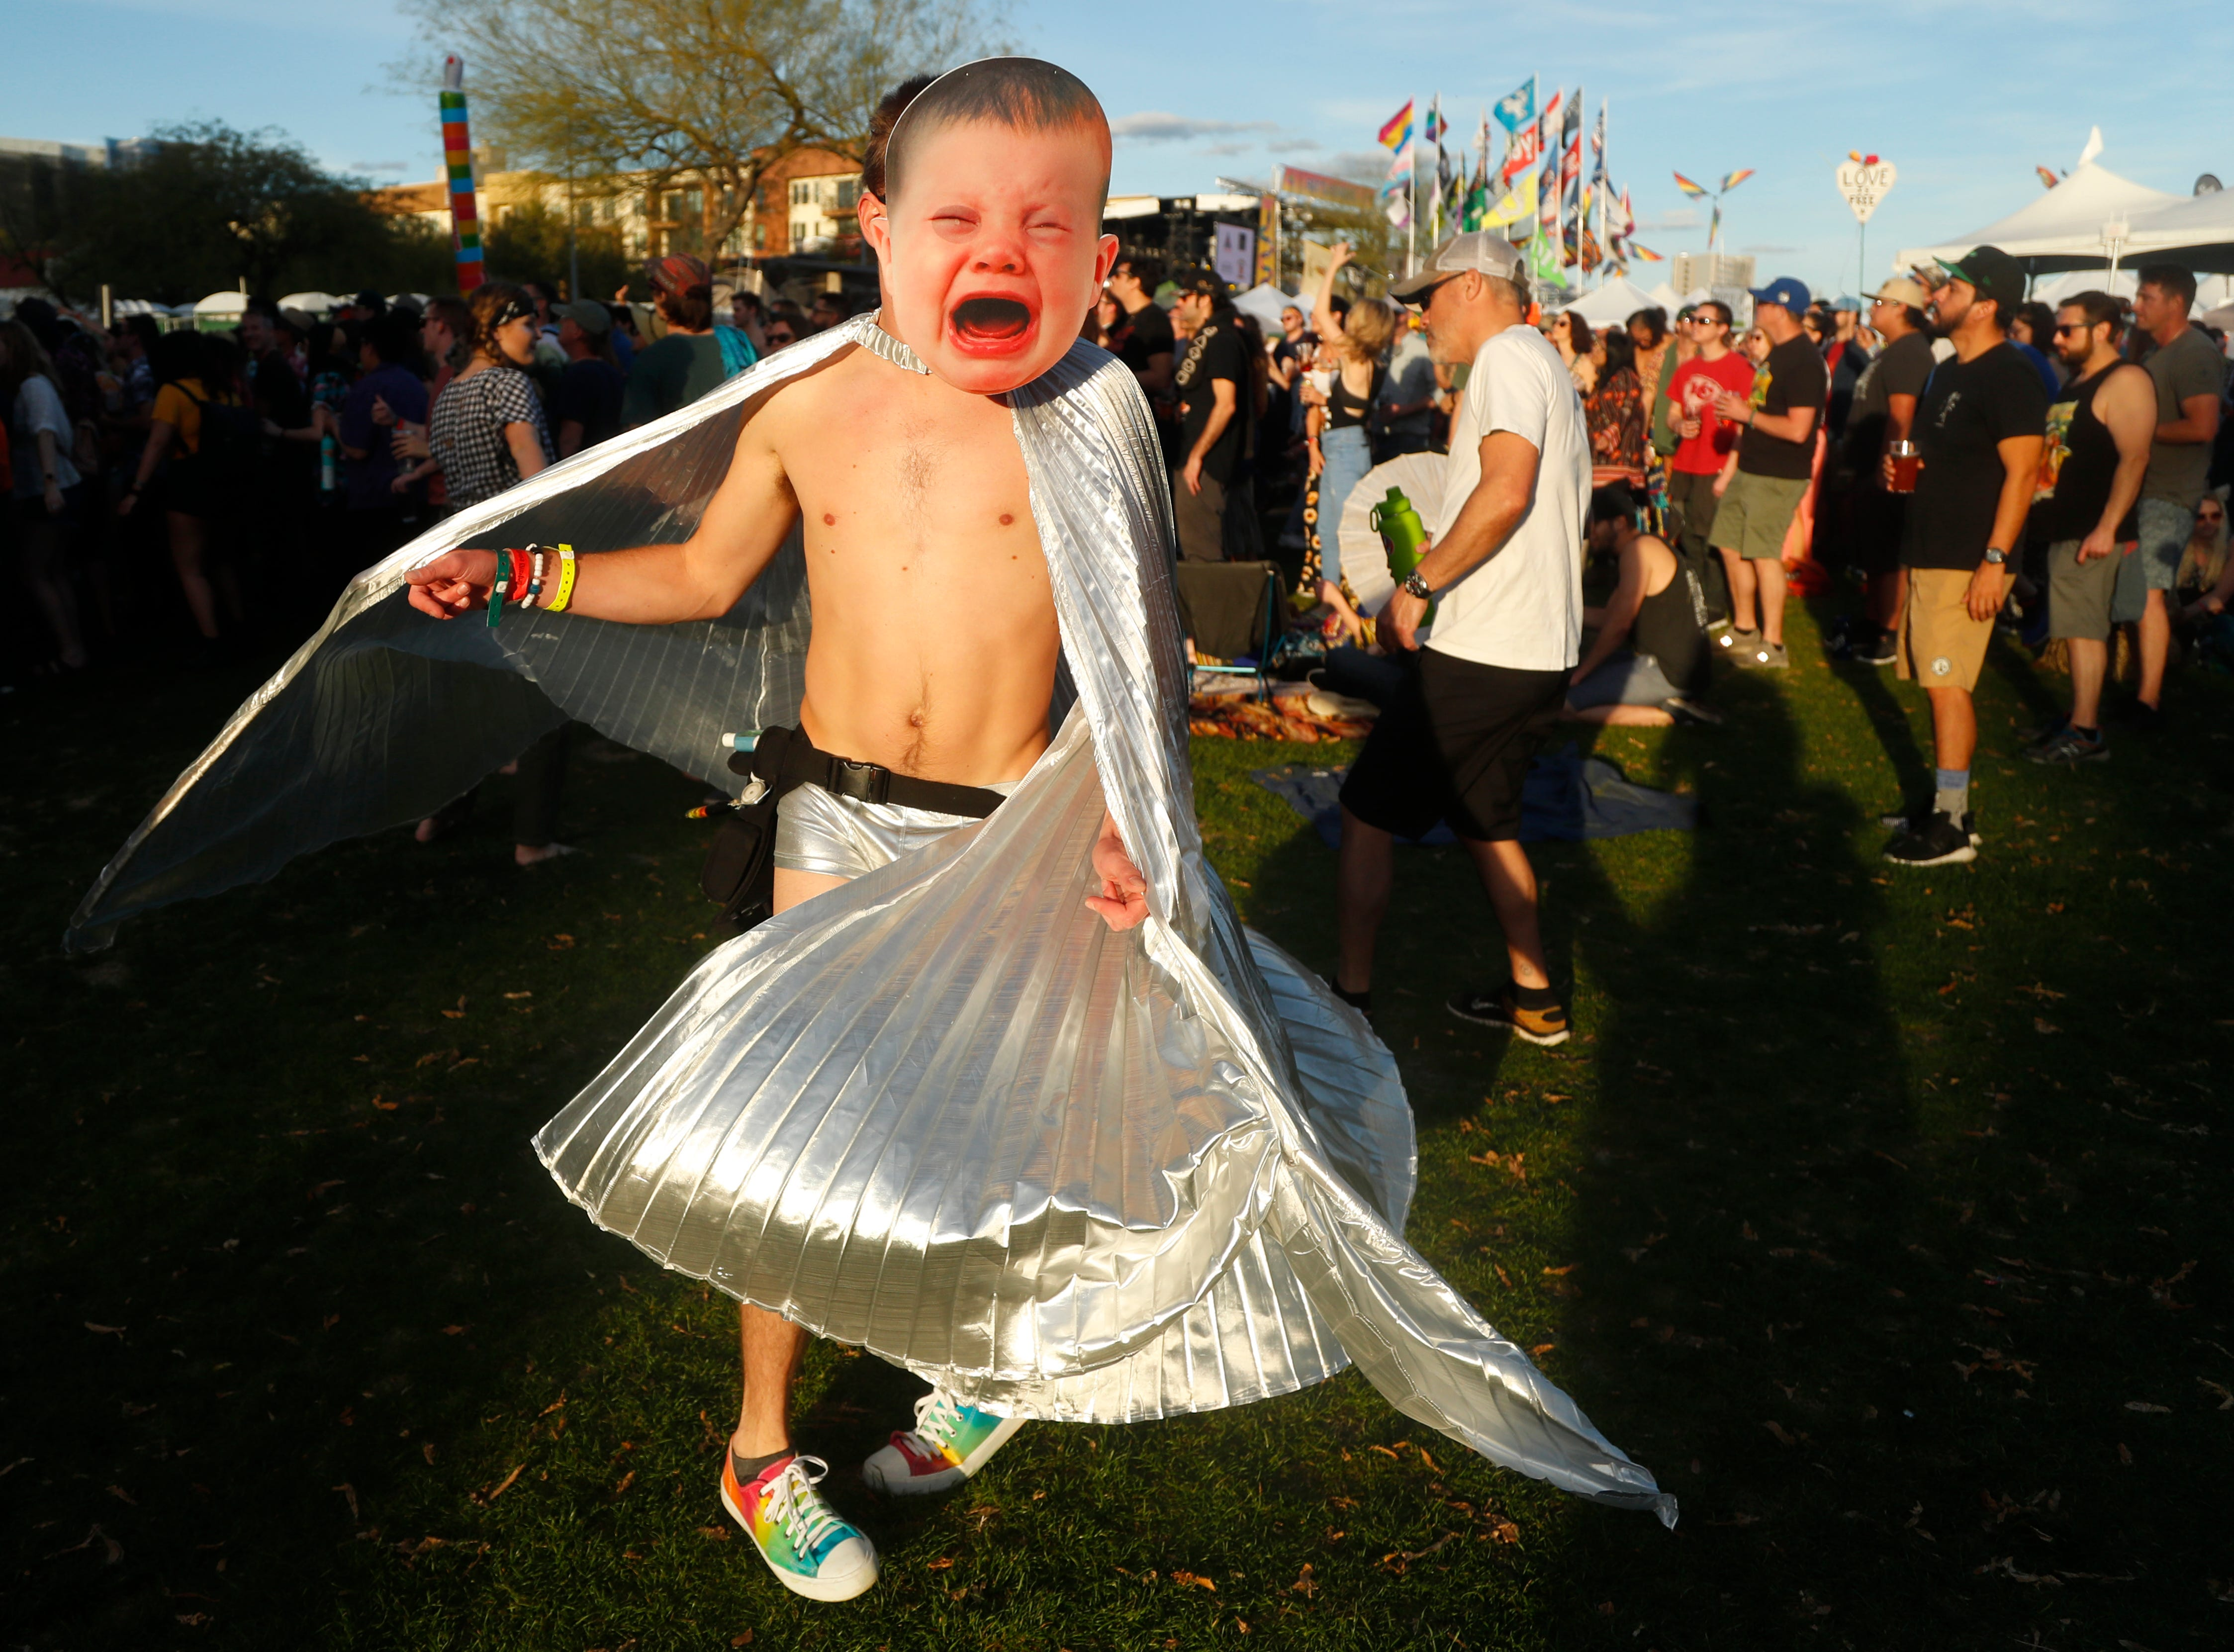 Jacob Shanahan dances with a baby mask on listening to Maribou State perform during McDowell Mountain Music Festival in Phoenix on March 3, 2019.